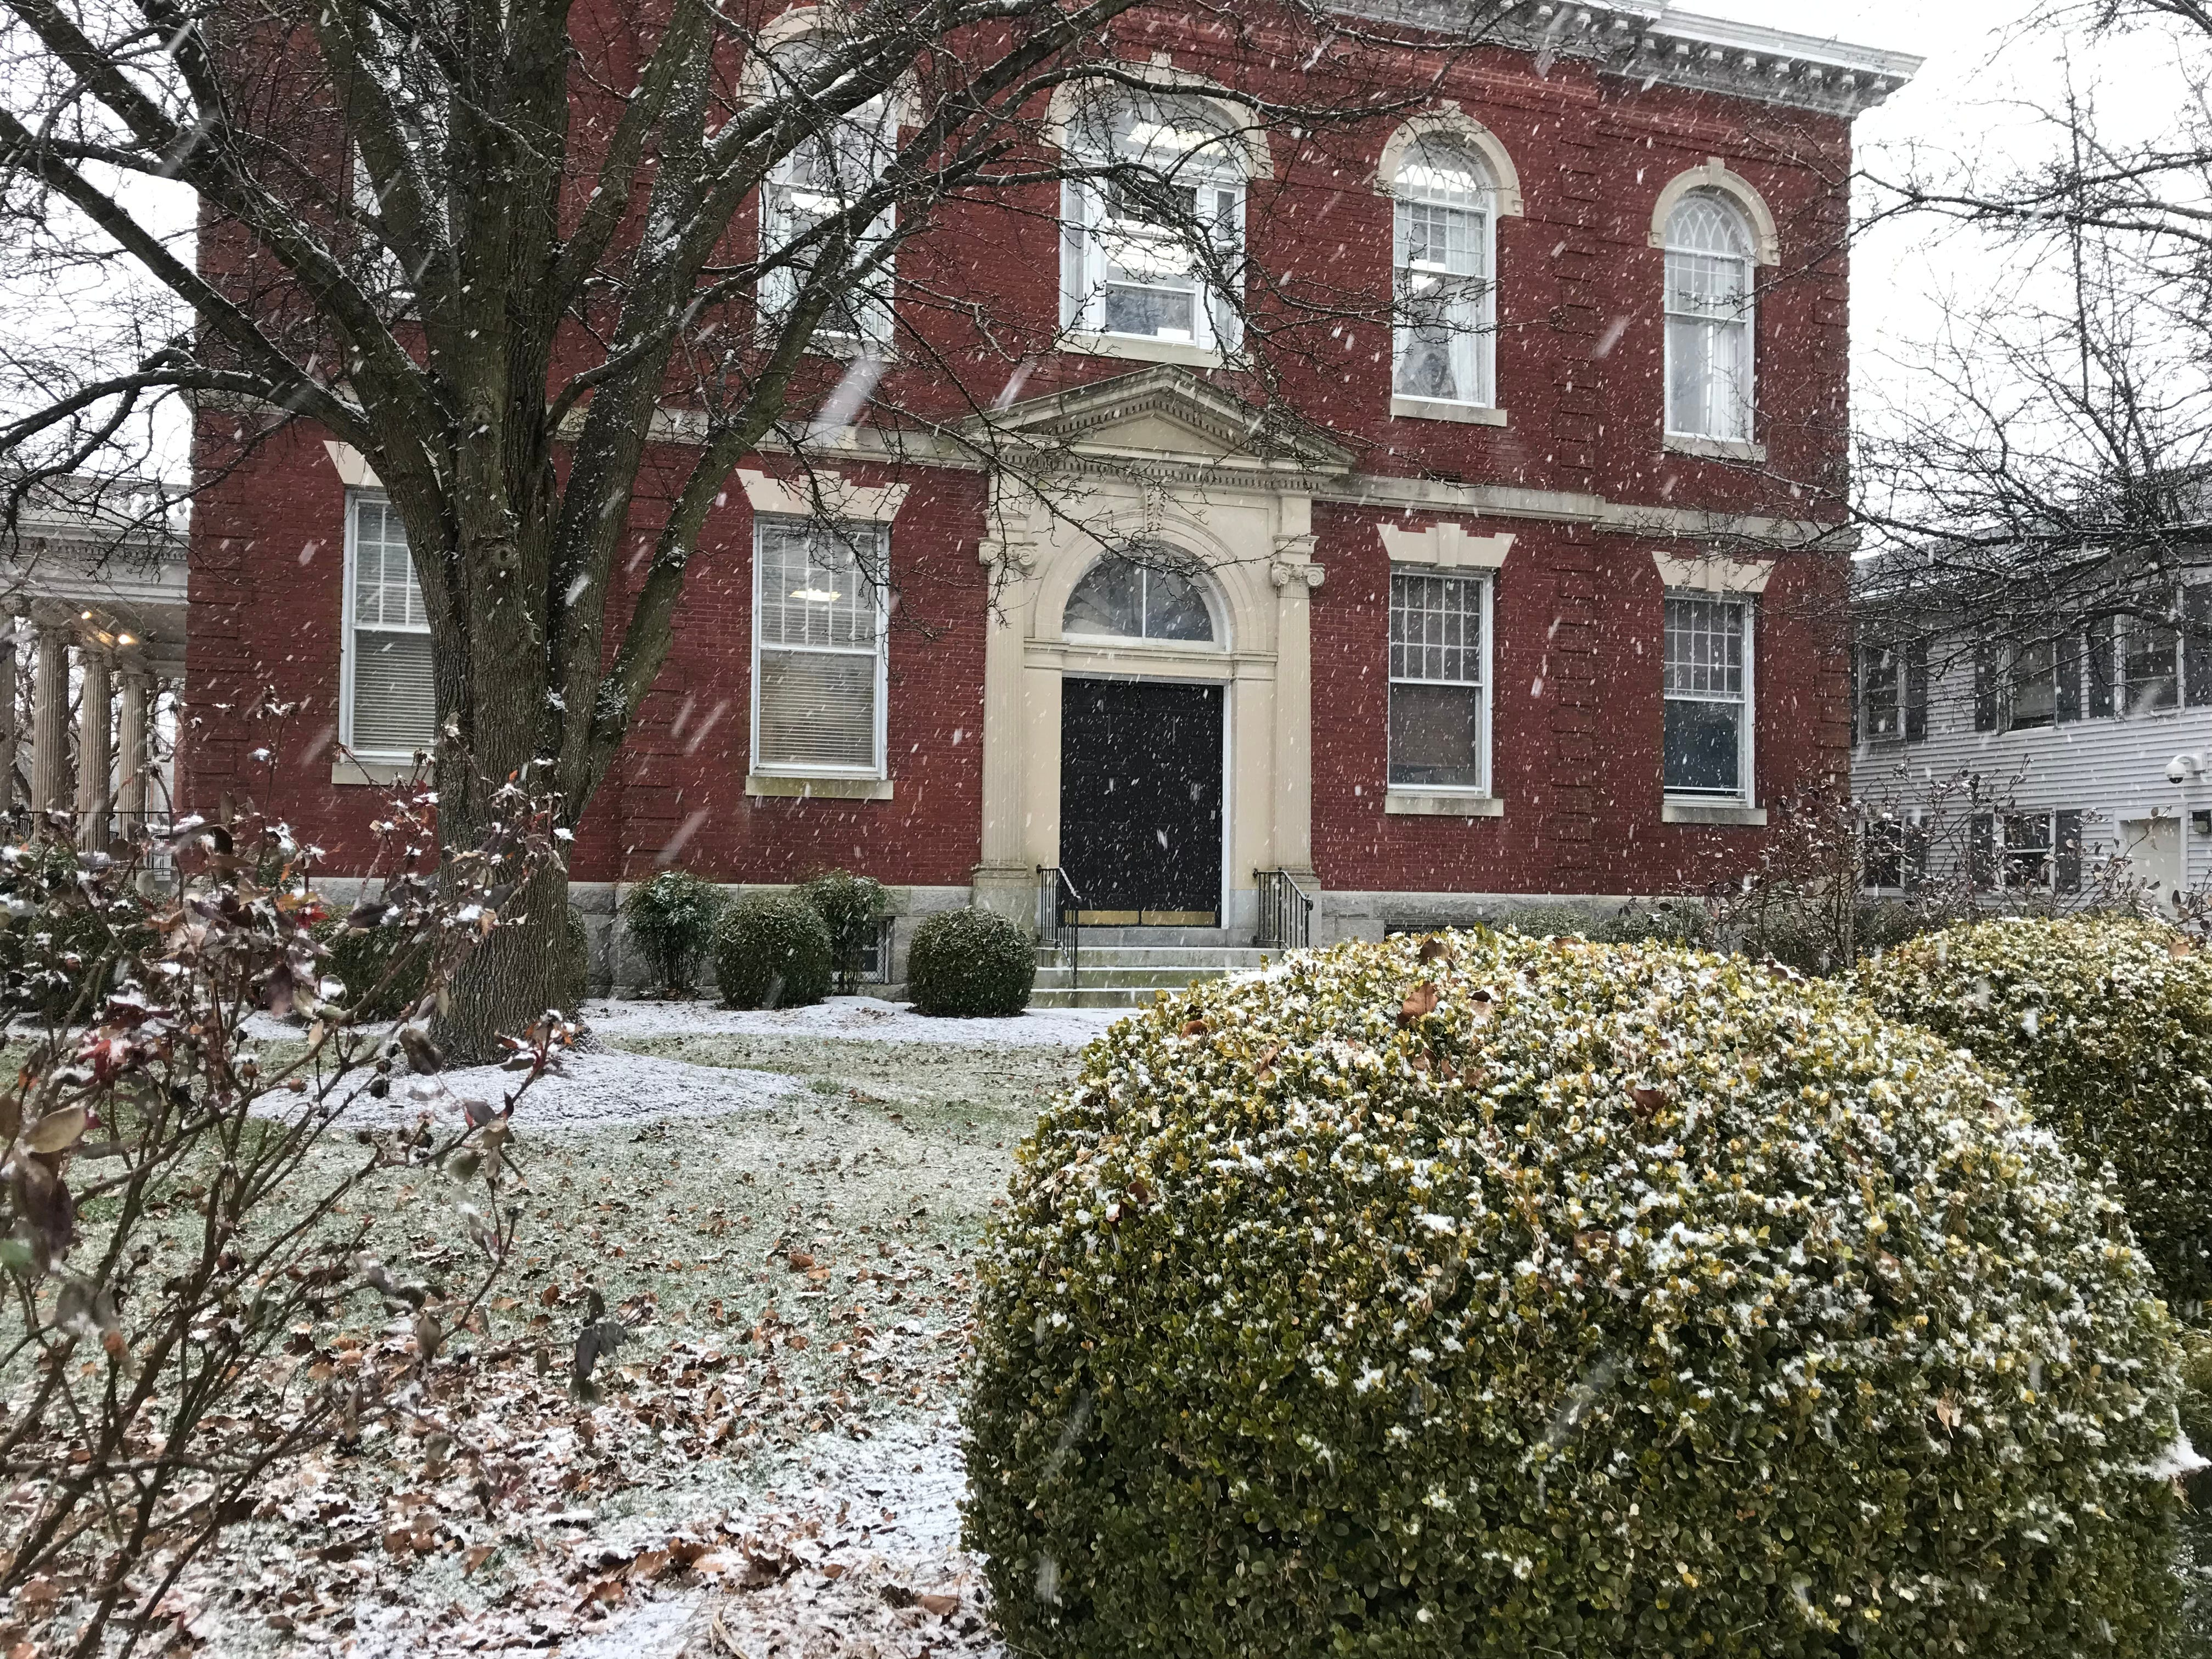 Princess Anne recieved less snow than other local areas as of mid-afternoon Friday, but a light dusting still coated the town.